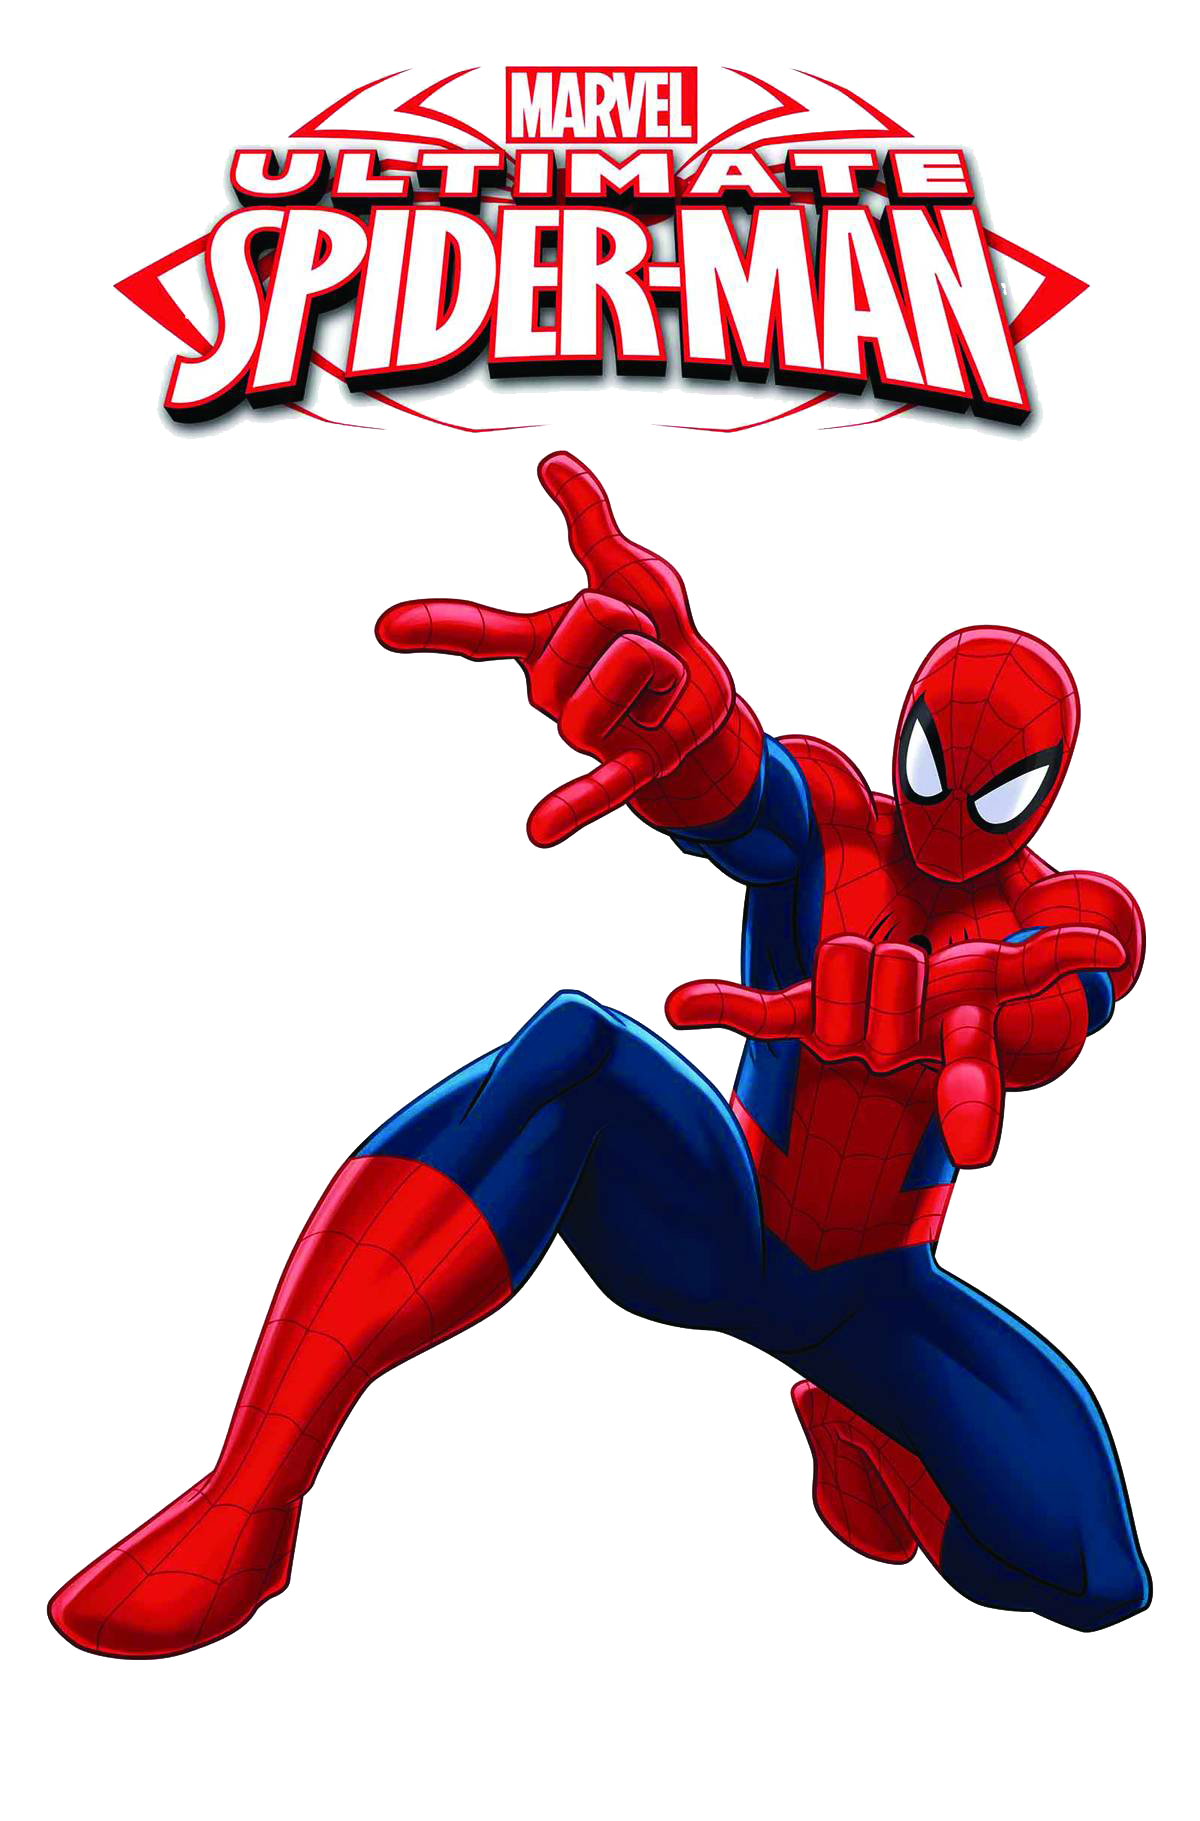 Ultimate spiderman with logo clipart - Images spiderman ...